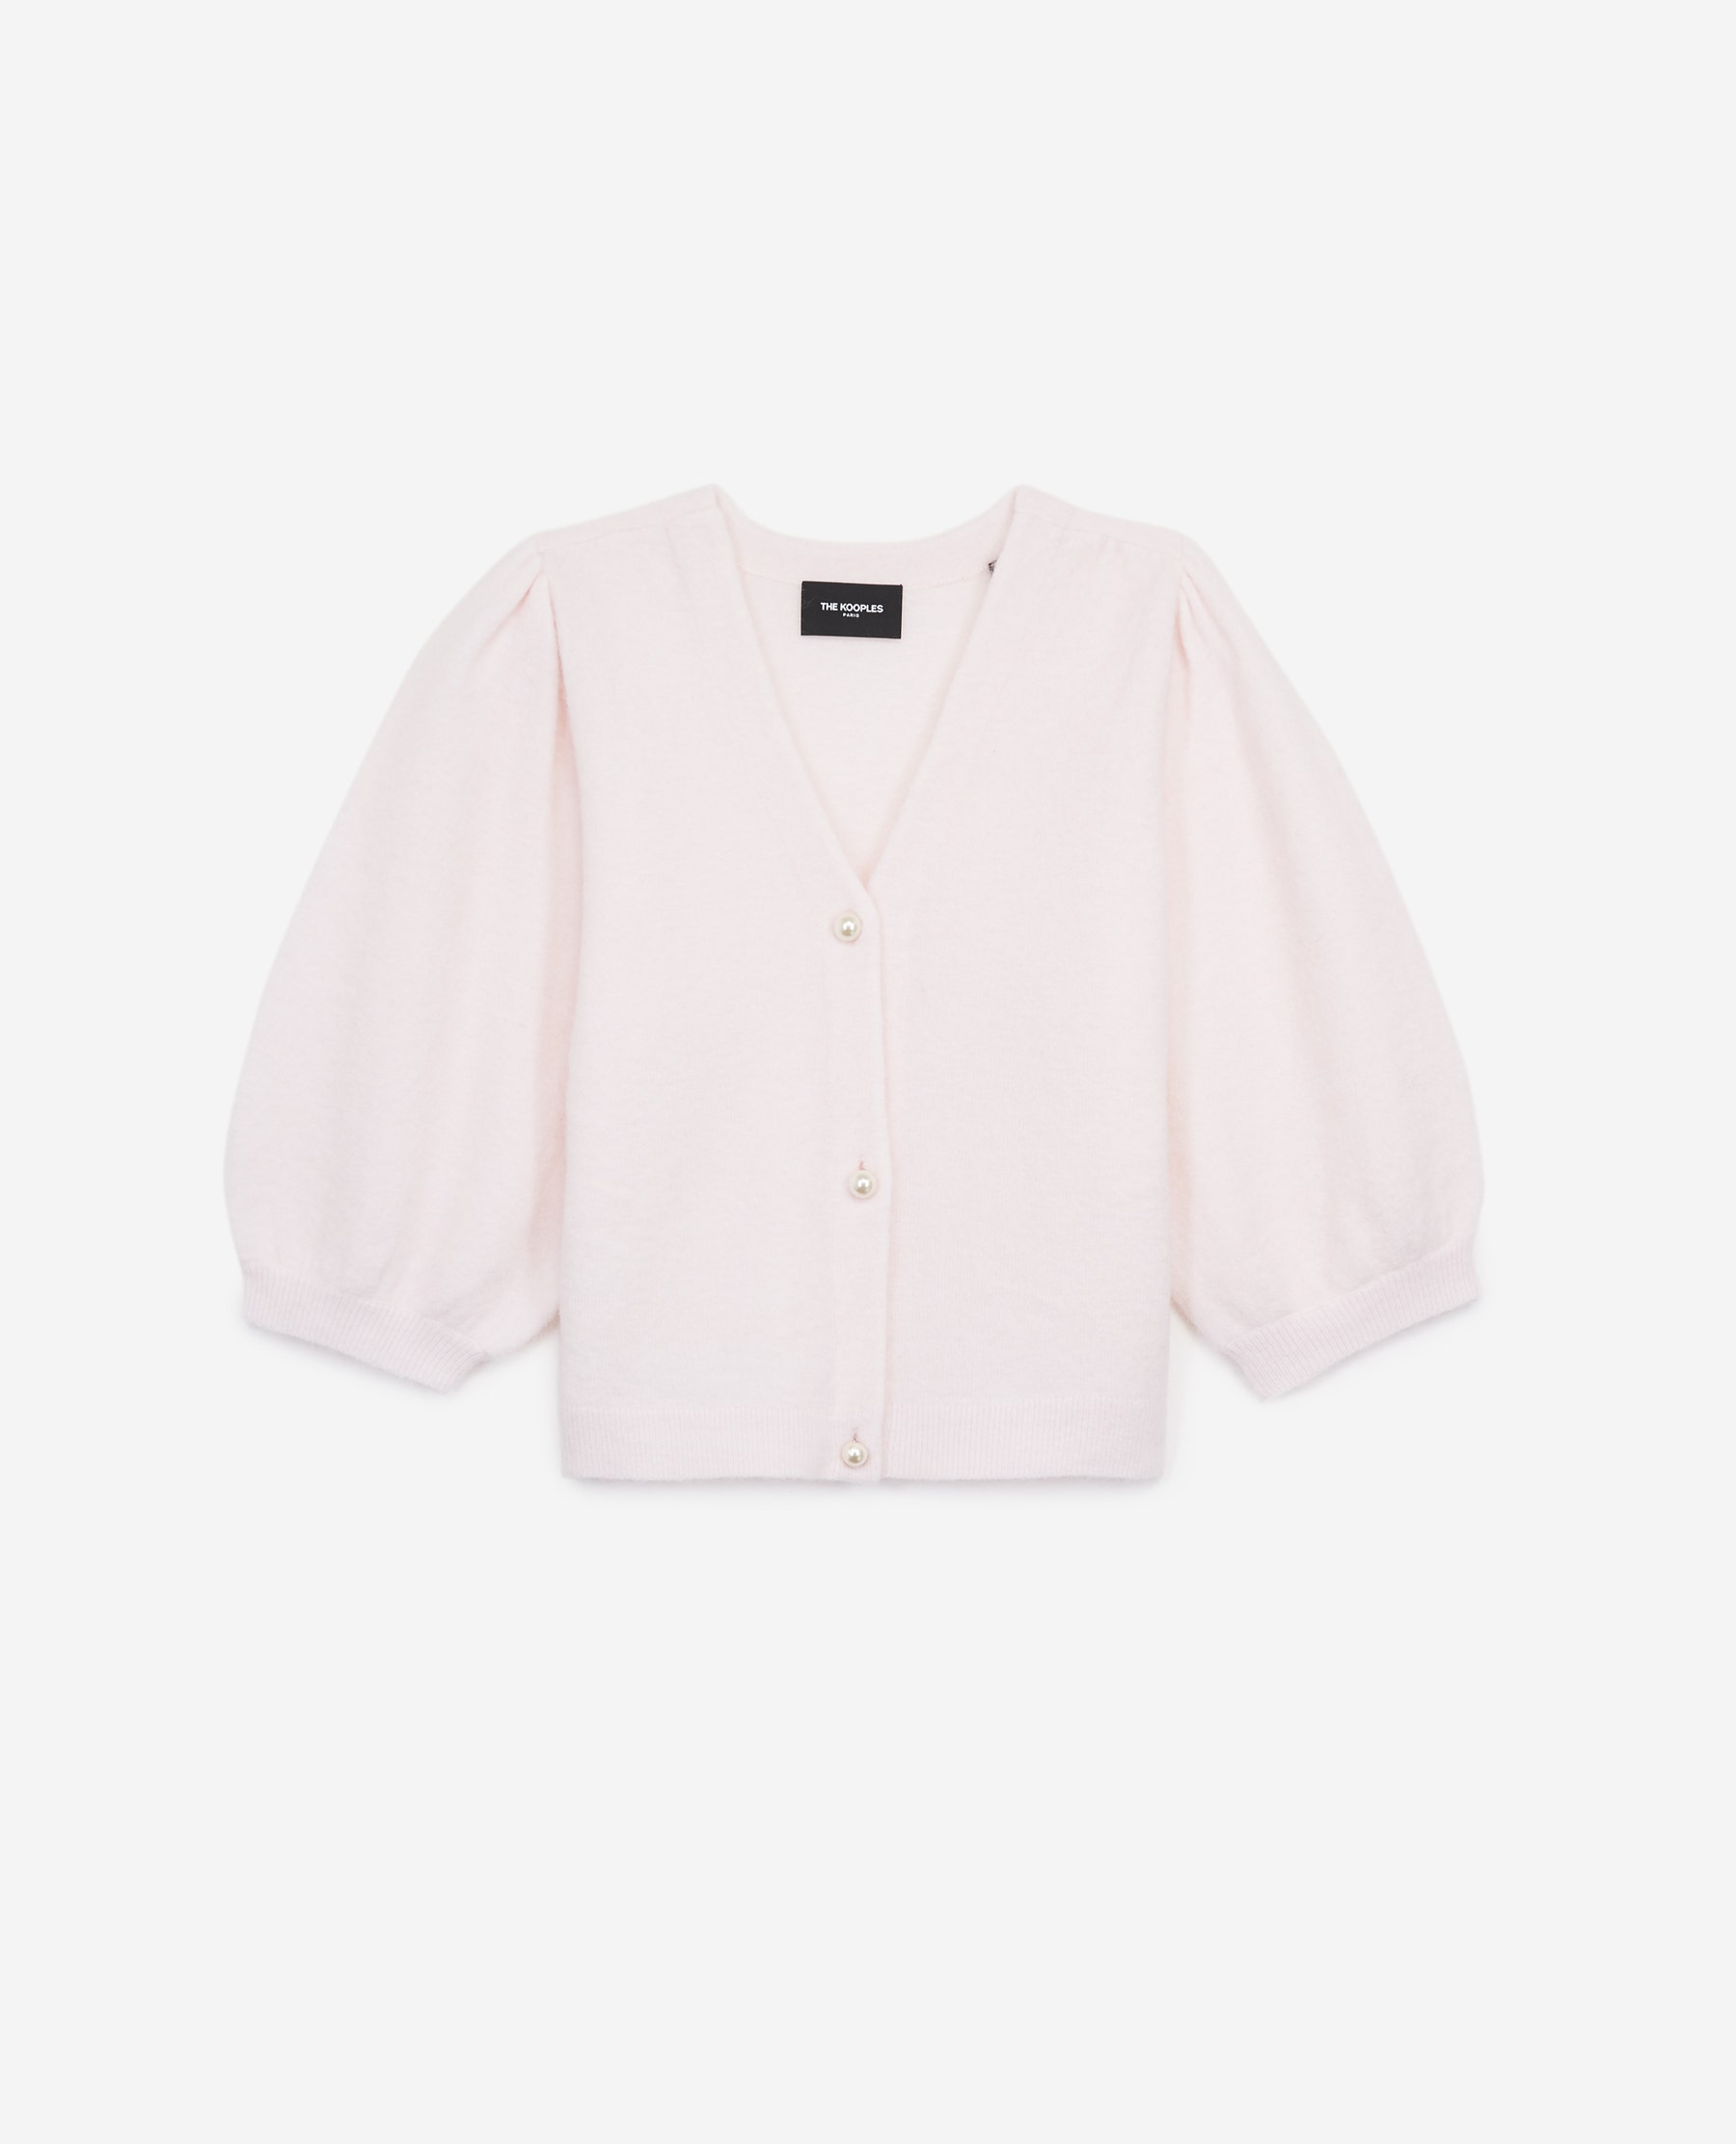 Cardigan maille manches courtes rose - The Kooples - Modalova